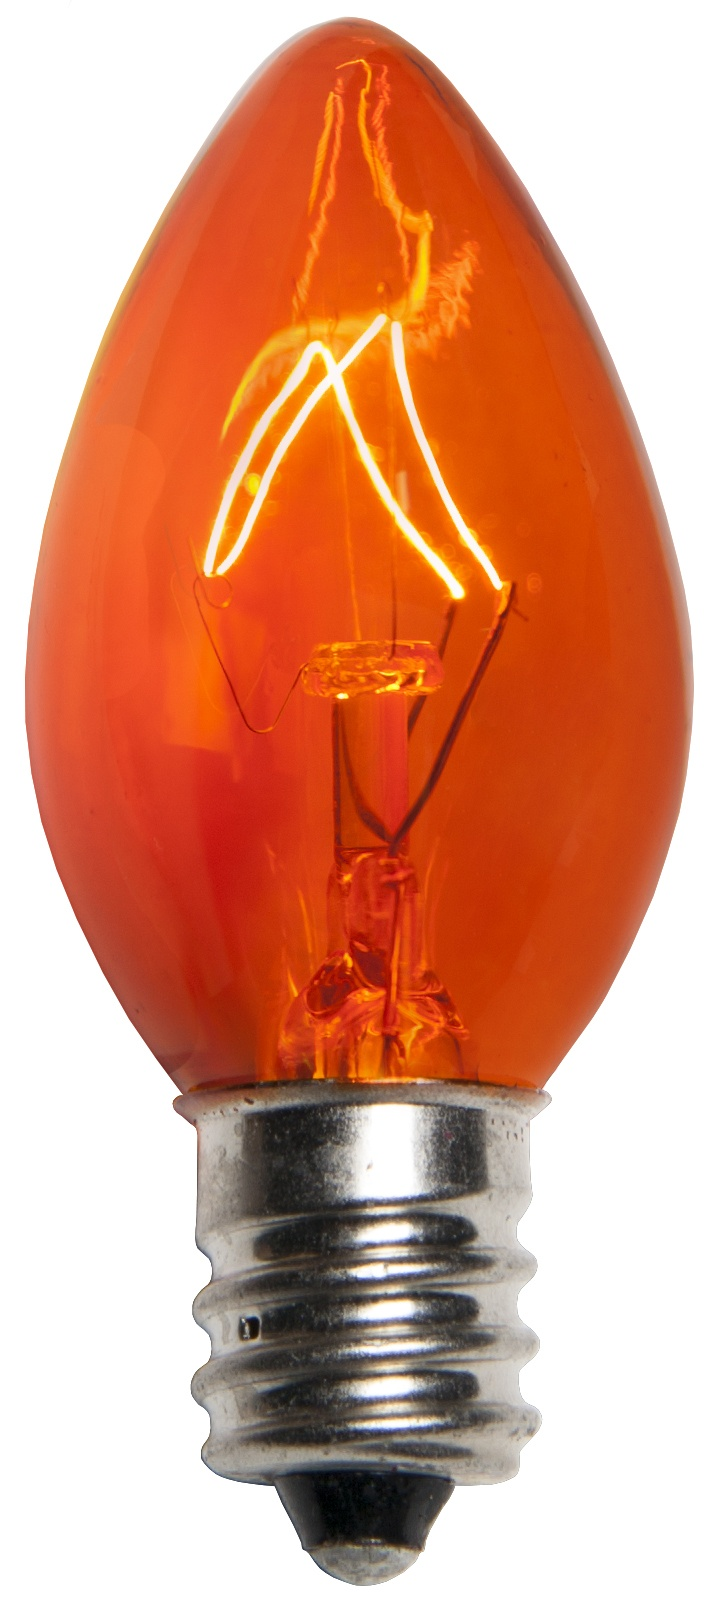 C7 Christmas Light Bulb   Orange Christmas